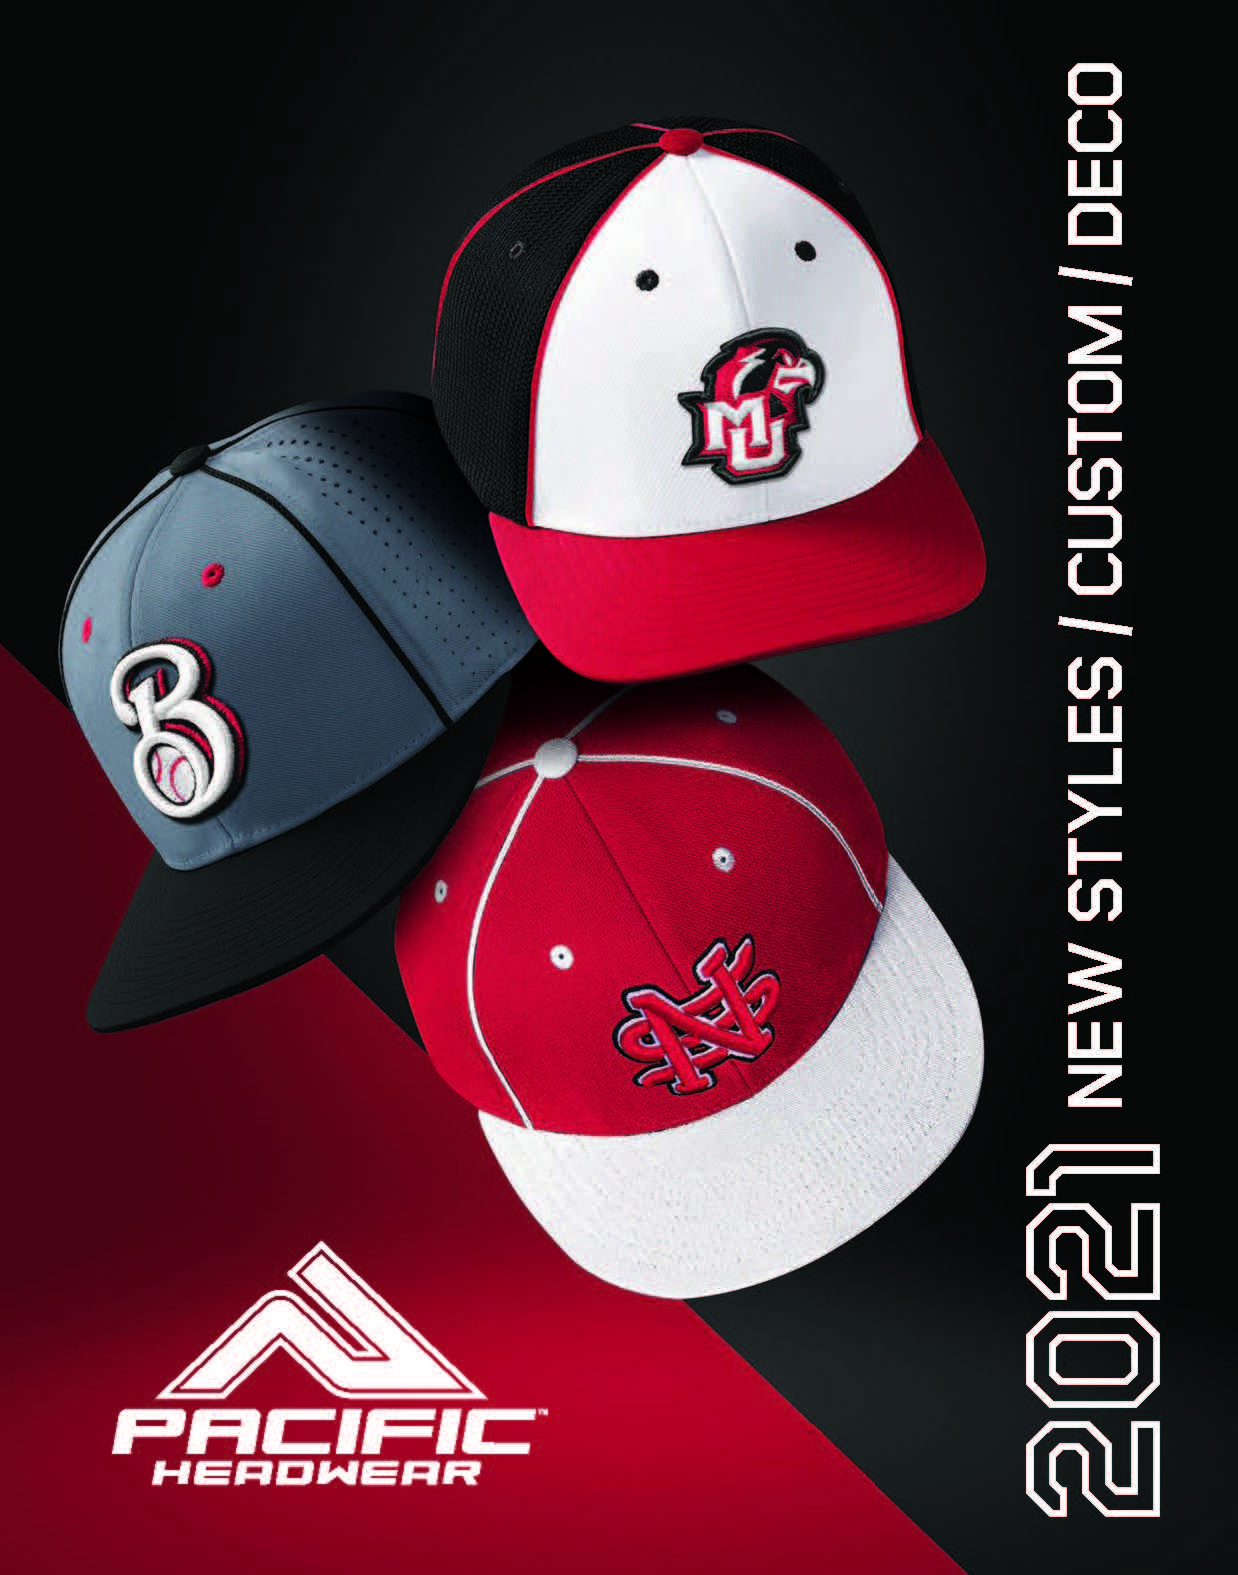 Pacific Headwear Custom 2021 Catalog